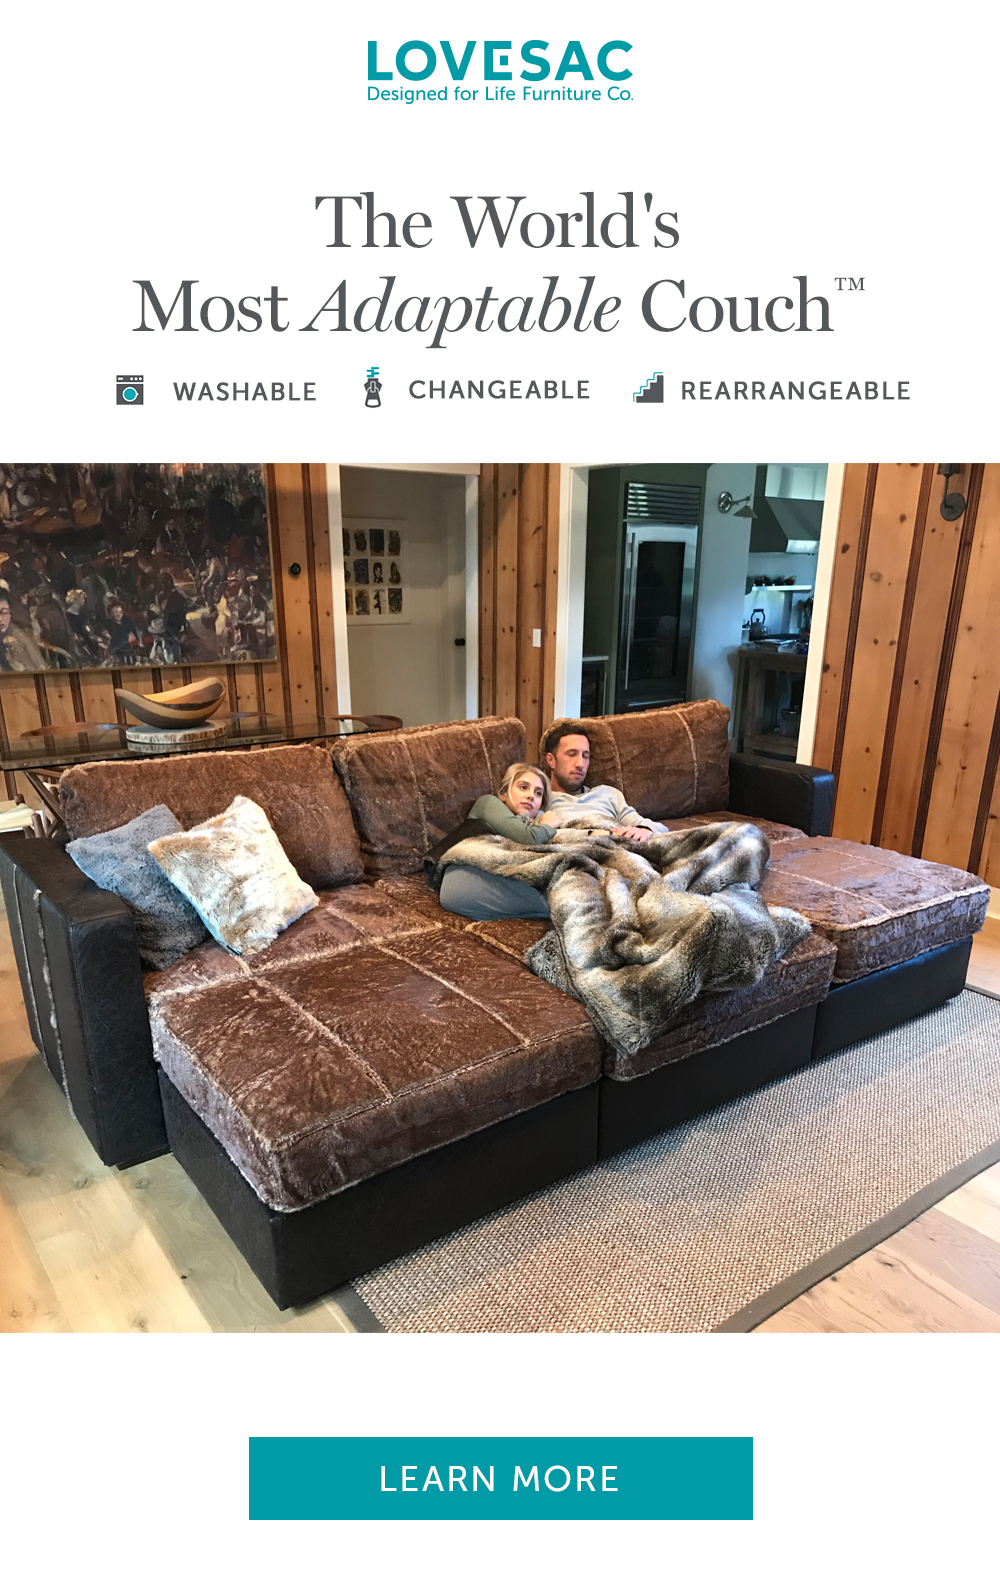 Norma Ecksofa Meet Lovesac Sactionals The World S Most Adaptable Couch With